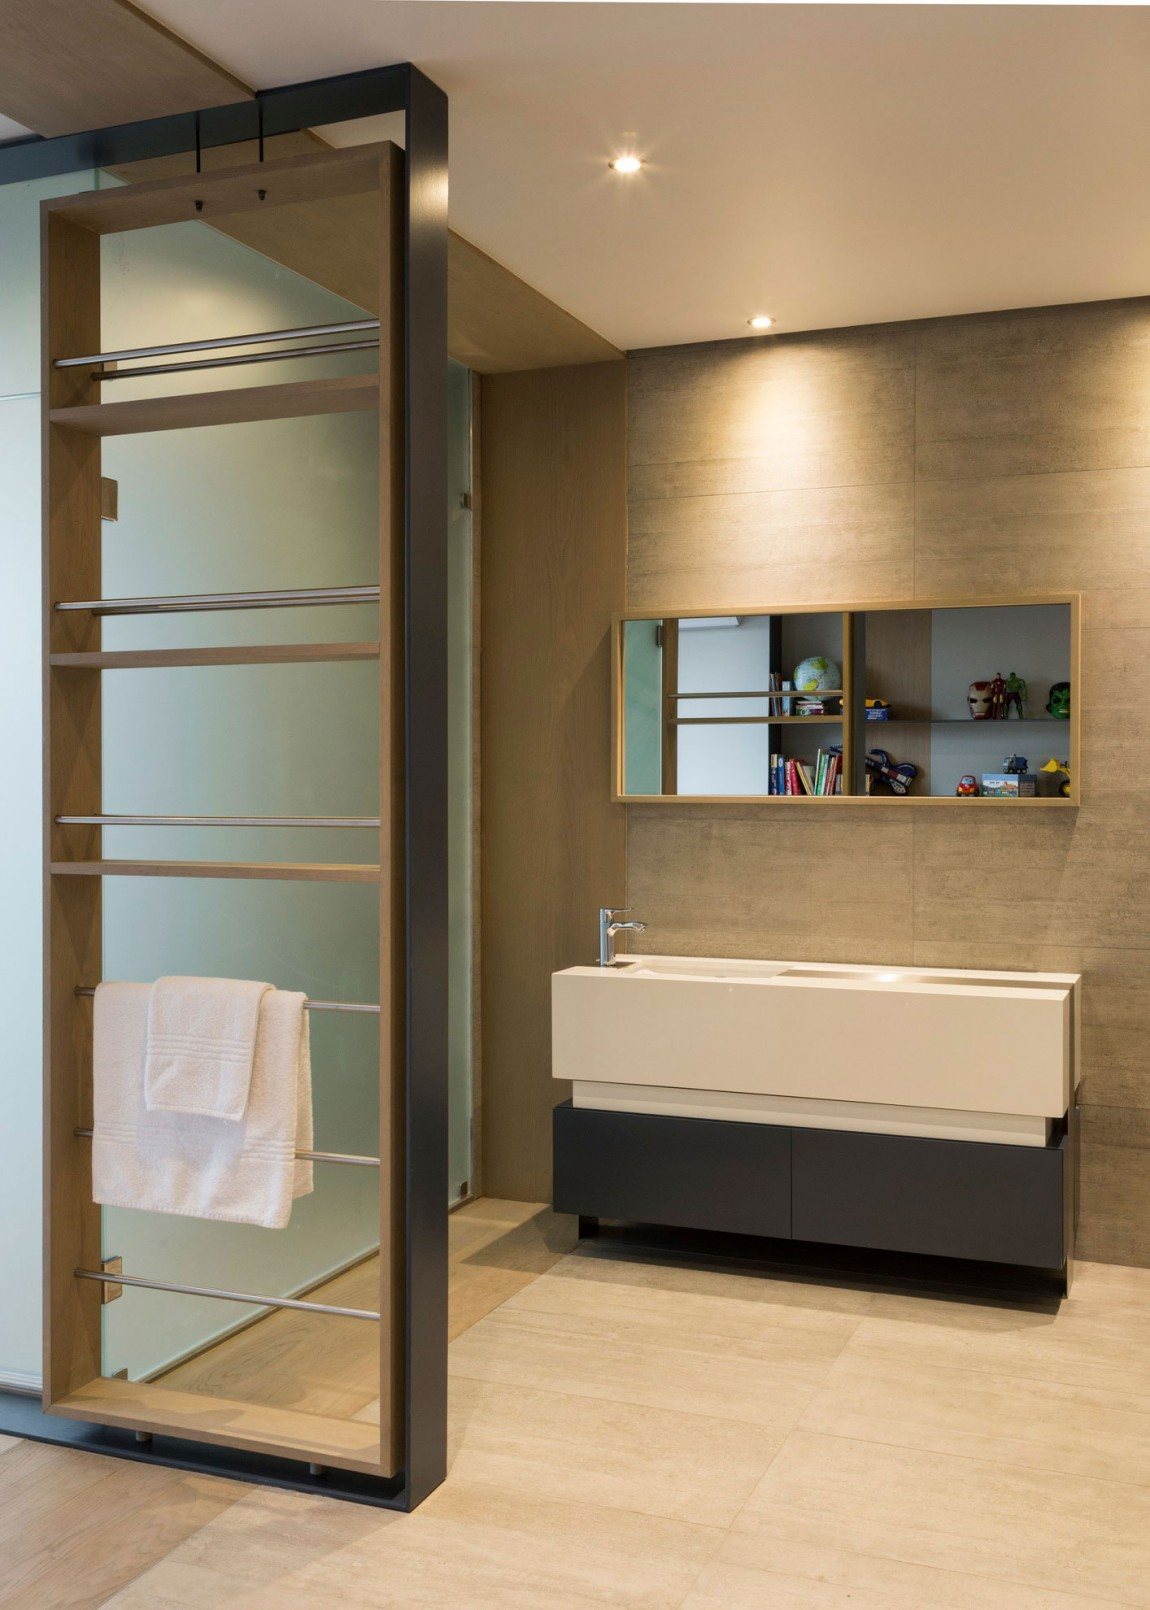 Modern bathroom furniture in House Sar by Nico van der Meulen Architects